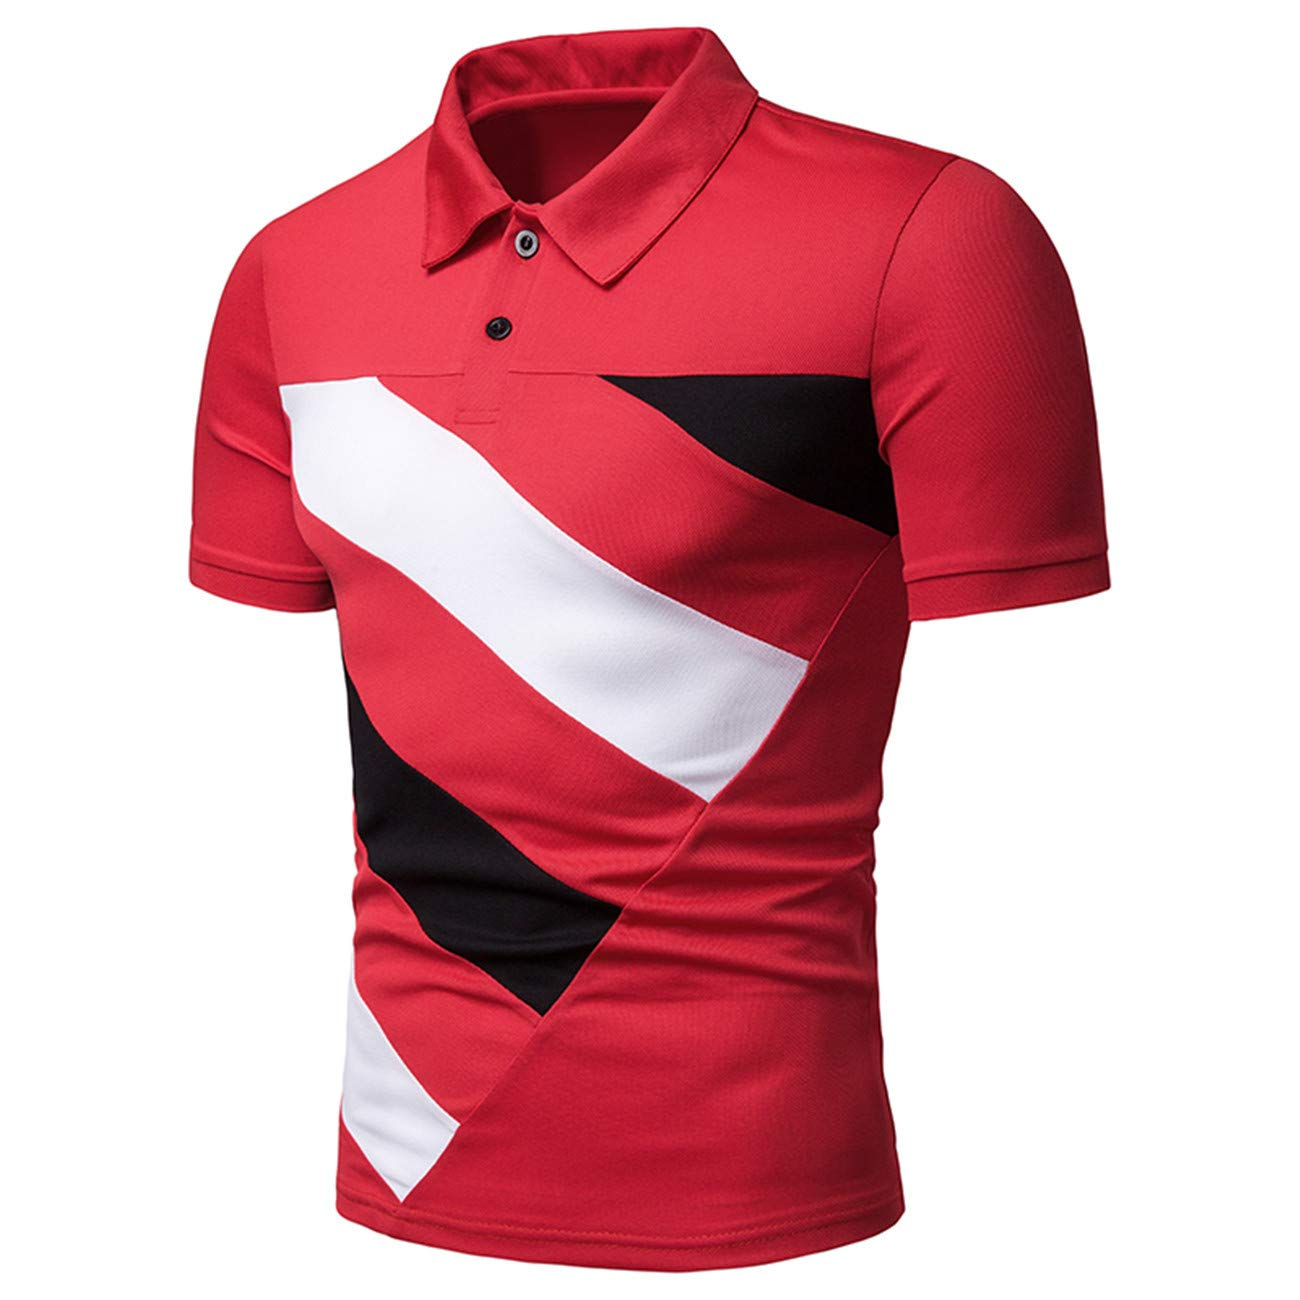 Mens Stitching Color Short Sleeve Leisure and Fashion Polo Shirt